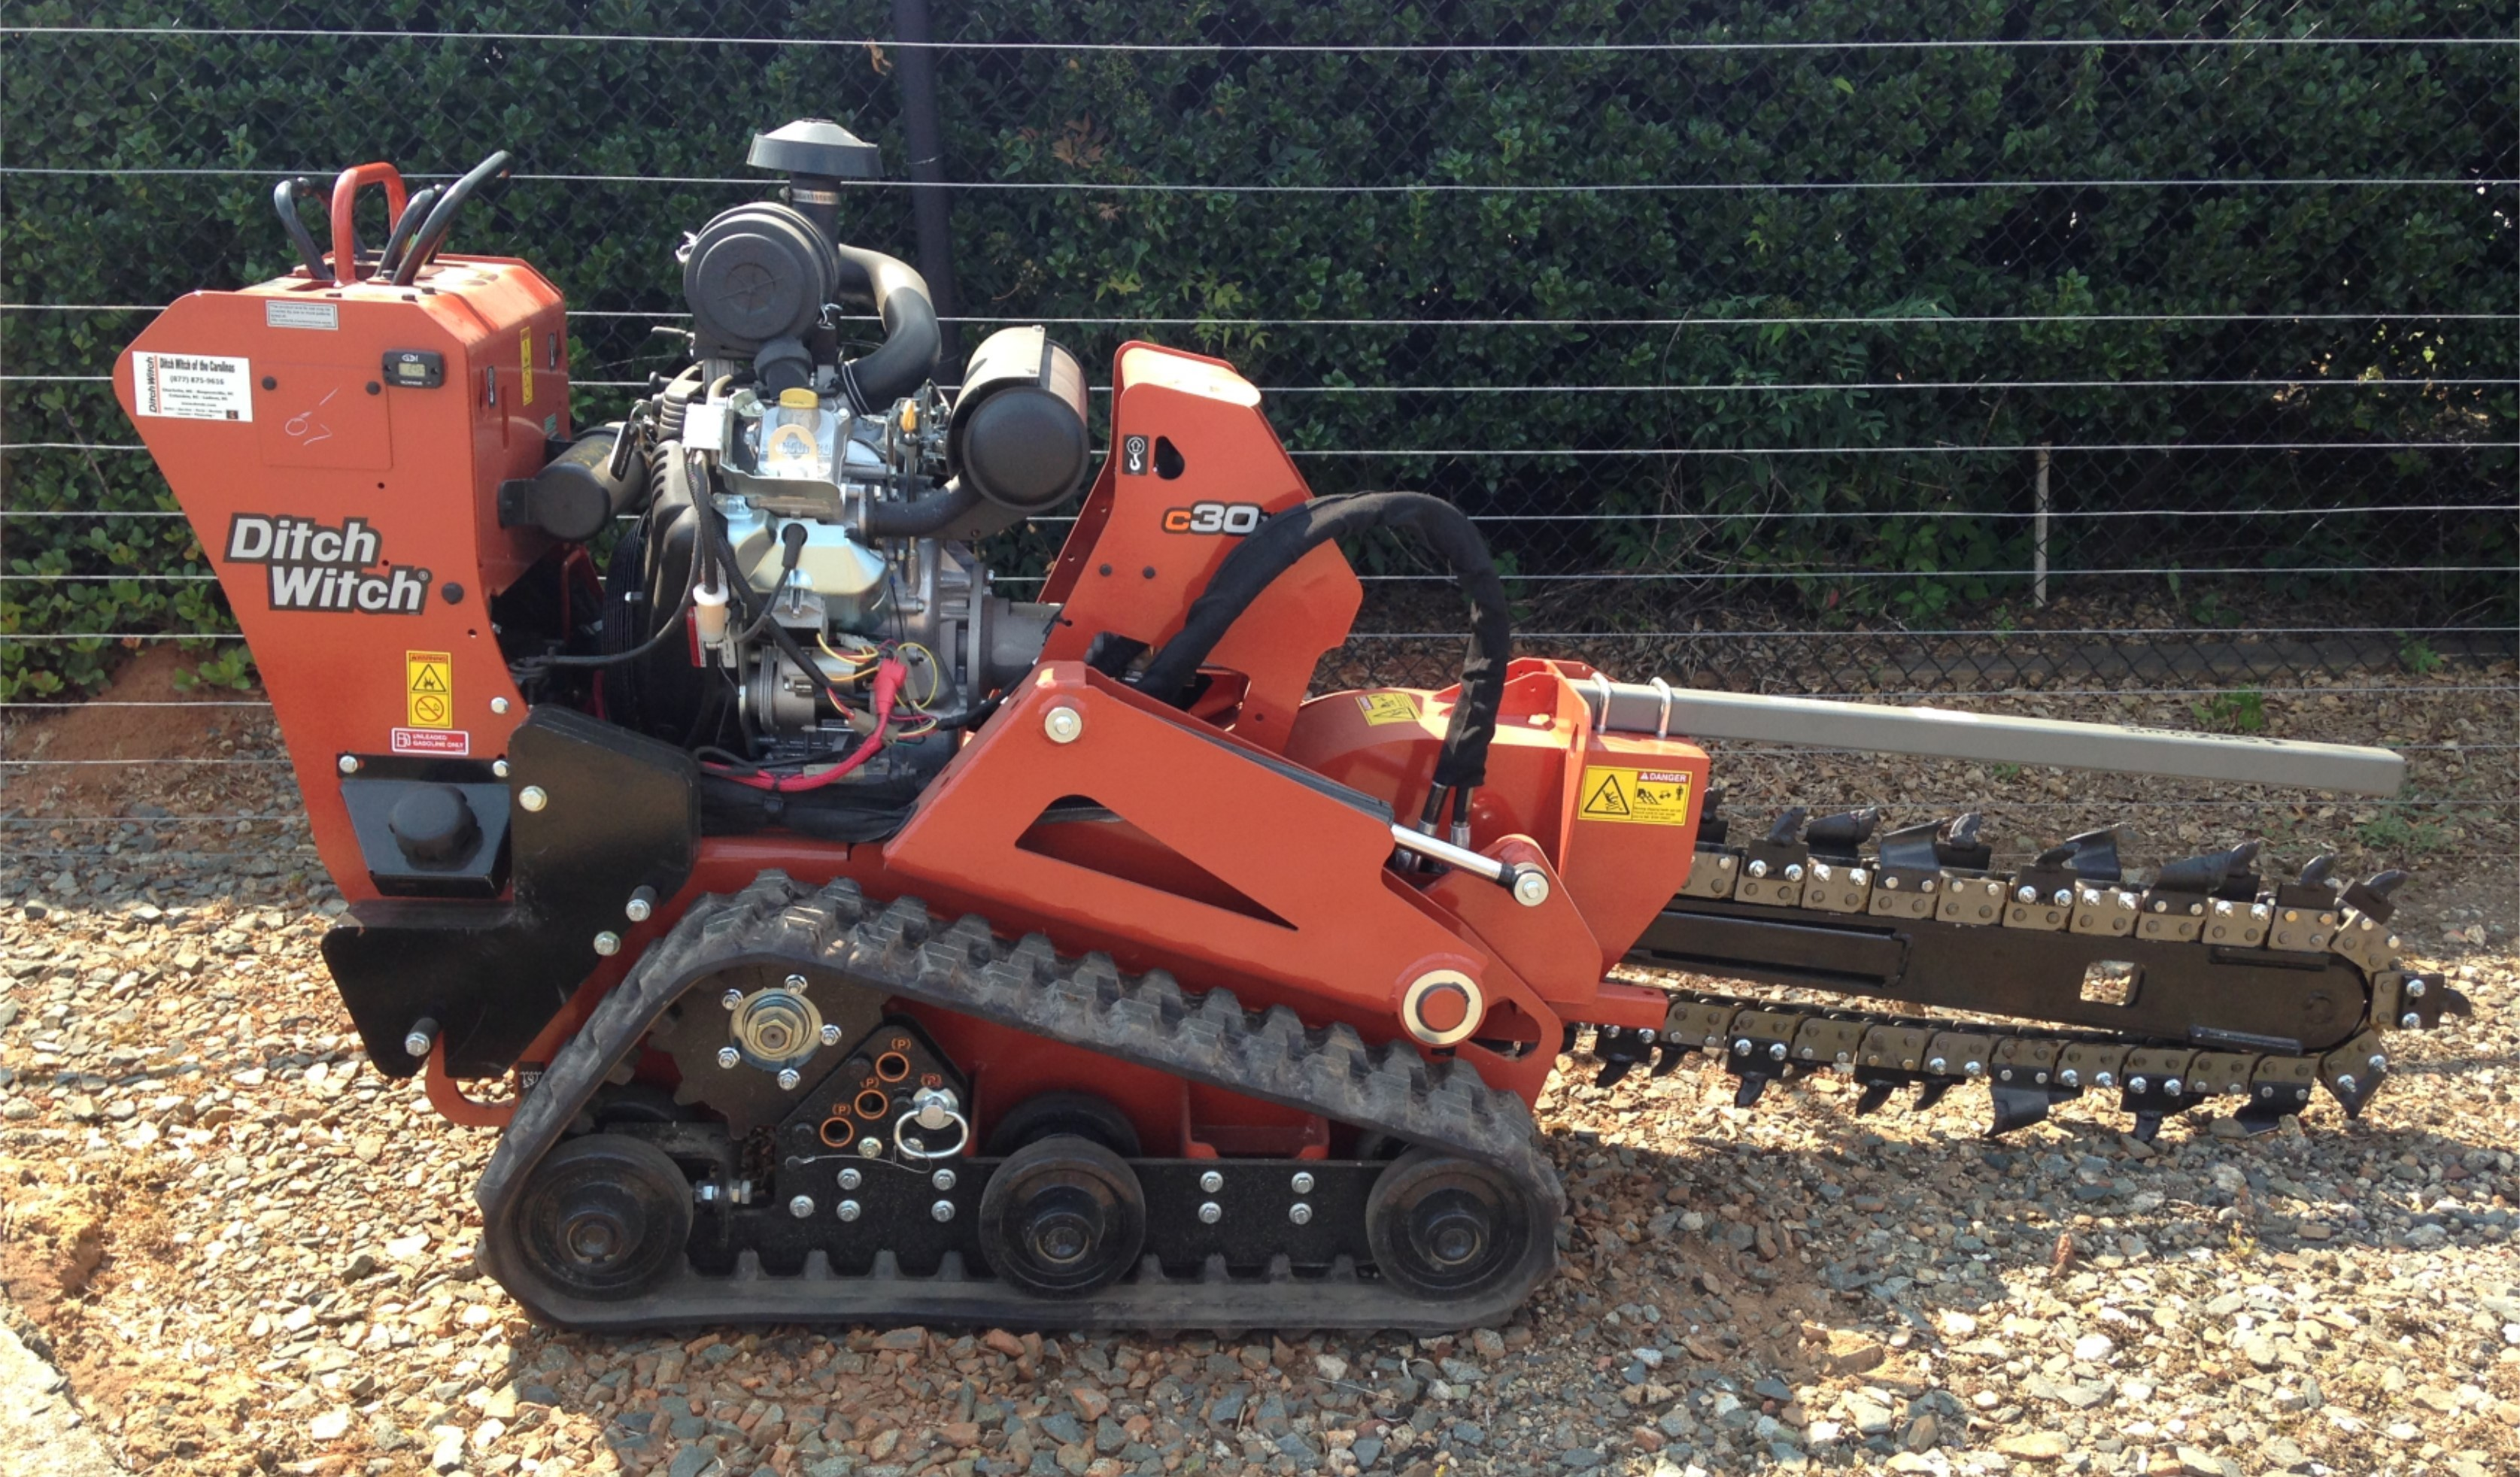 New, Ditch Witch, C30X Walk-Behind Trencher, Trenchers, North Carolina, South Carolina, Equipment